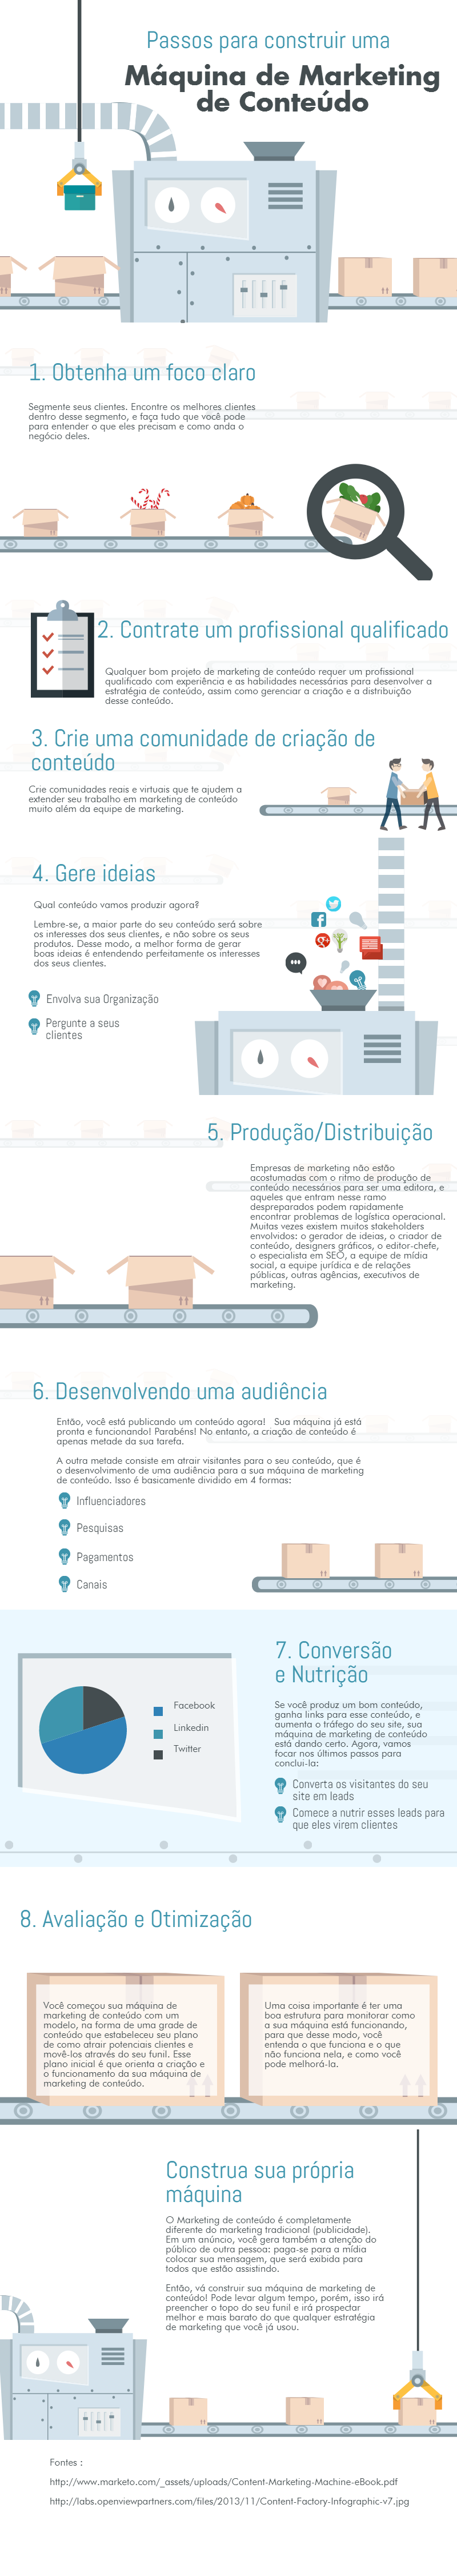 infografico maquina marketing